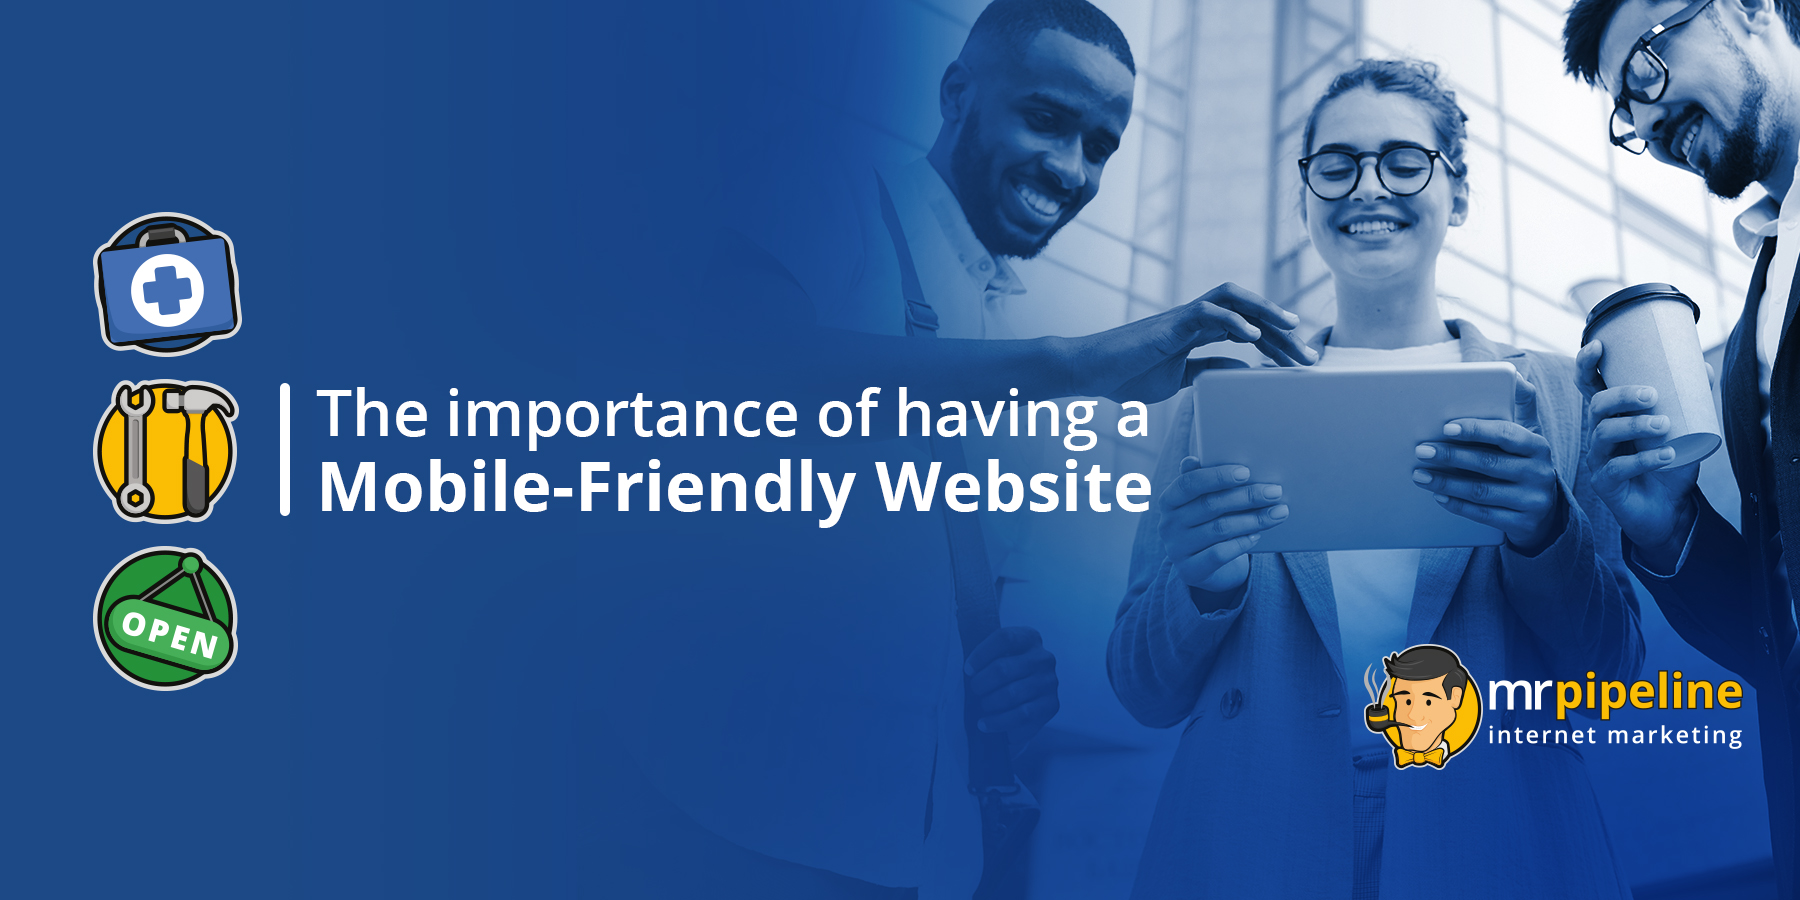 The importance of having a mobile-friendly website